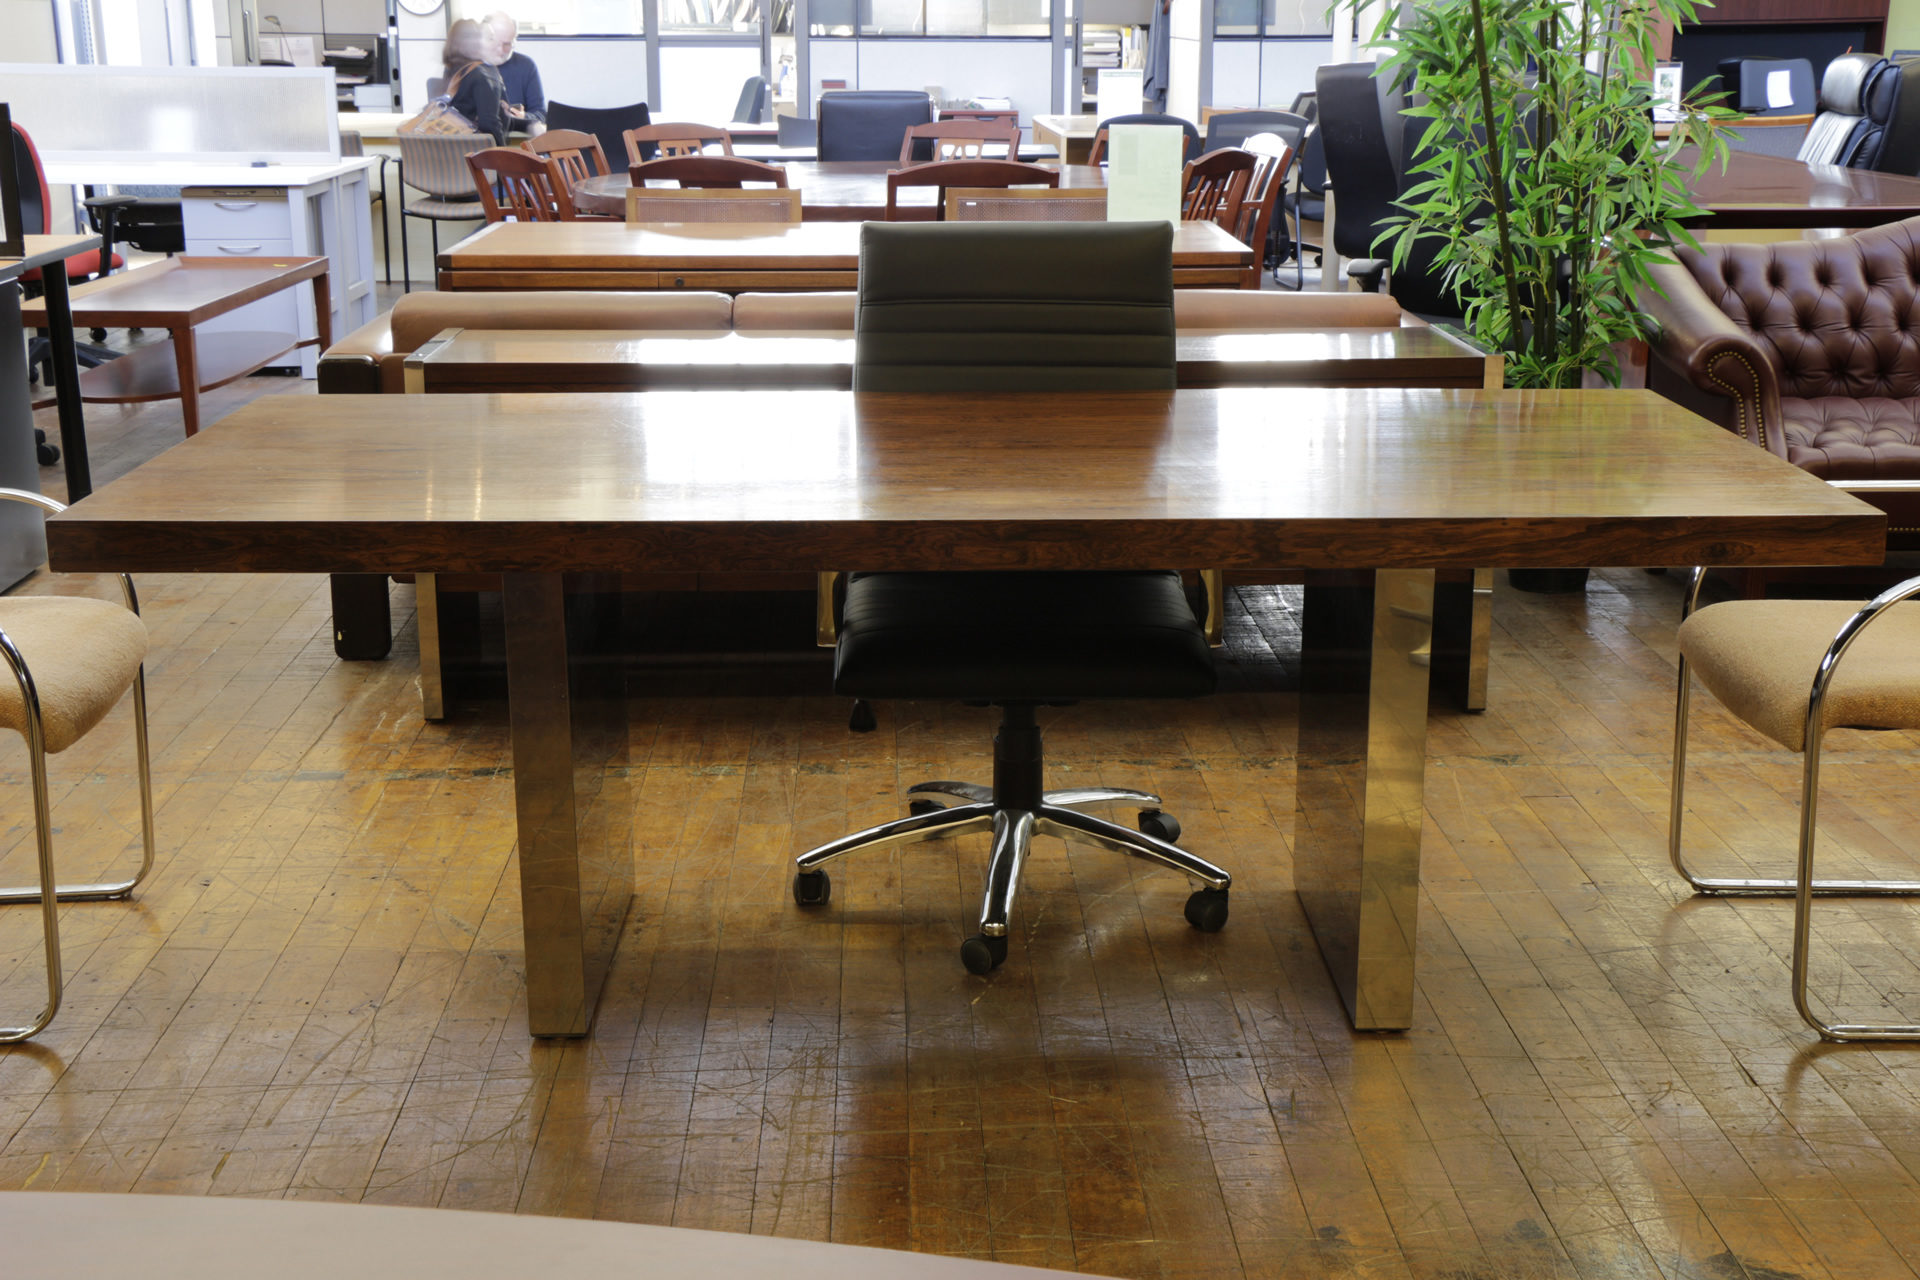 peartreeofficefurniture_peartreeofficefurniture_mg_2021.jpg